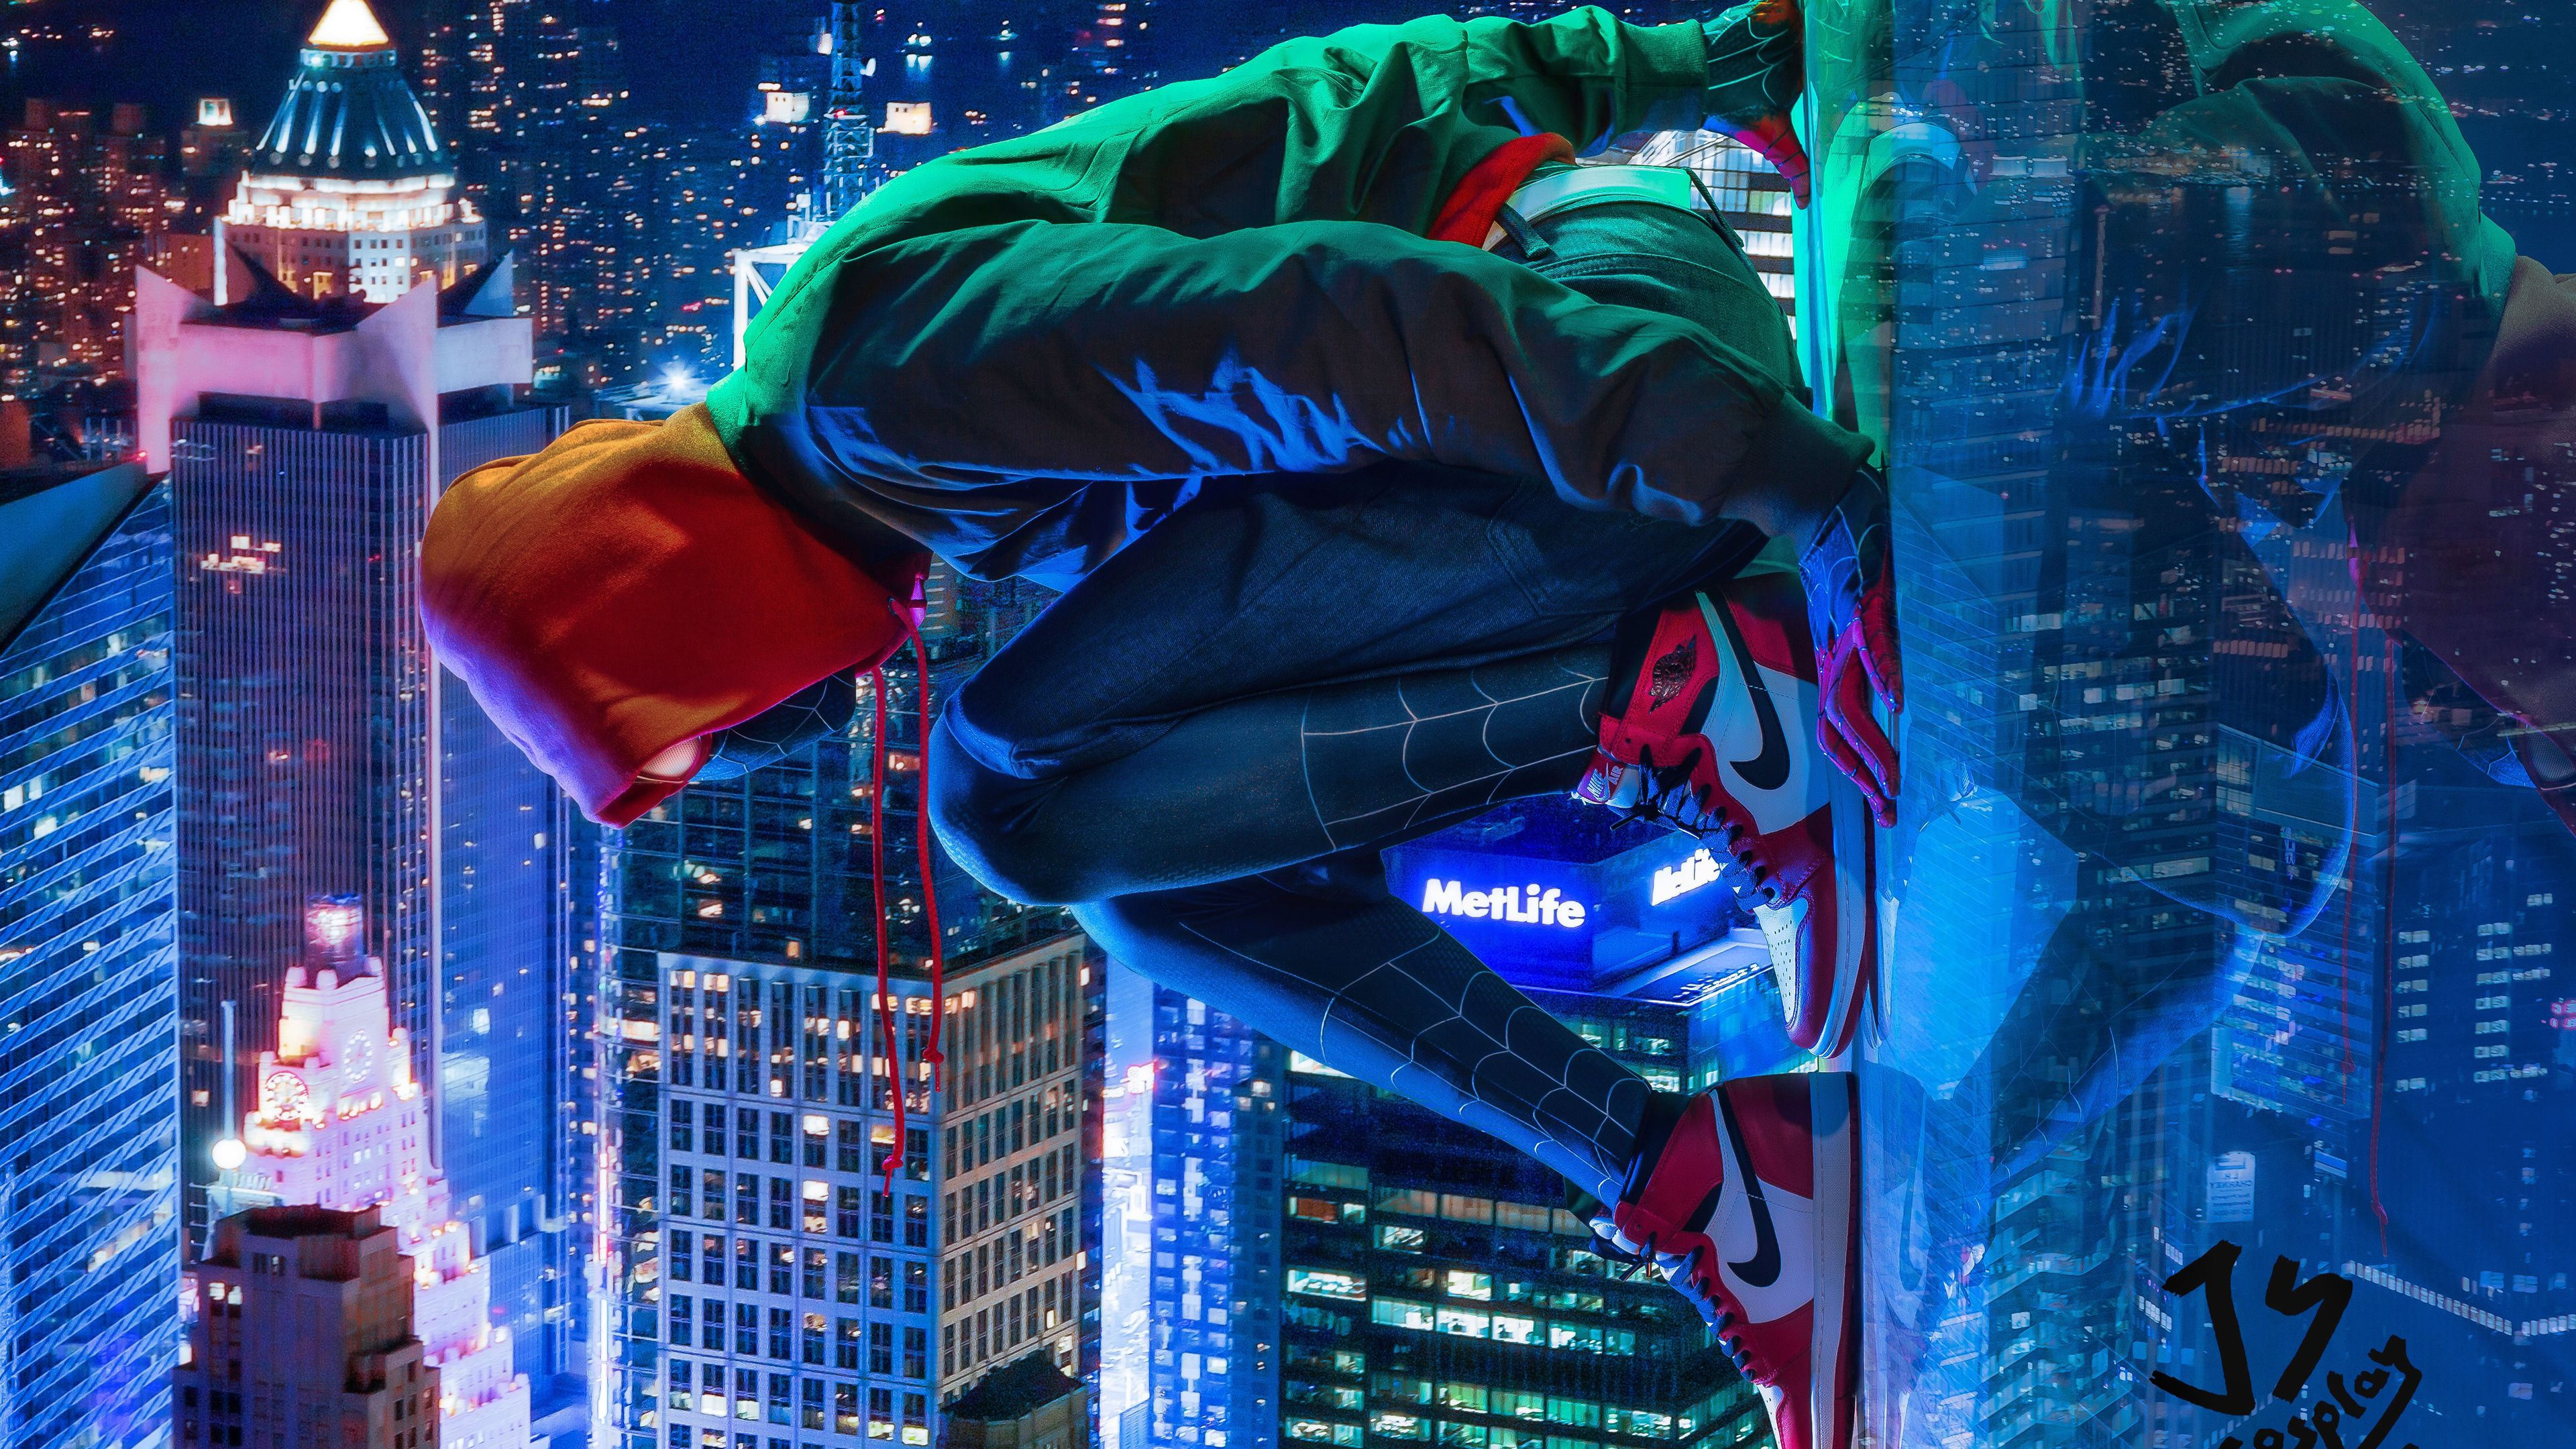 Miles Morales Spiderman Cosplay 4k Superheroes Wallpapers Spiderman Into The Spider Verse Wallpapers Miles Morales Spiderman Spiderman Cosplay Miles Morales